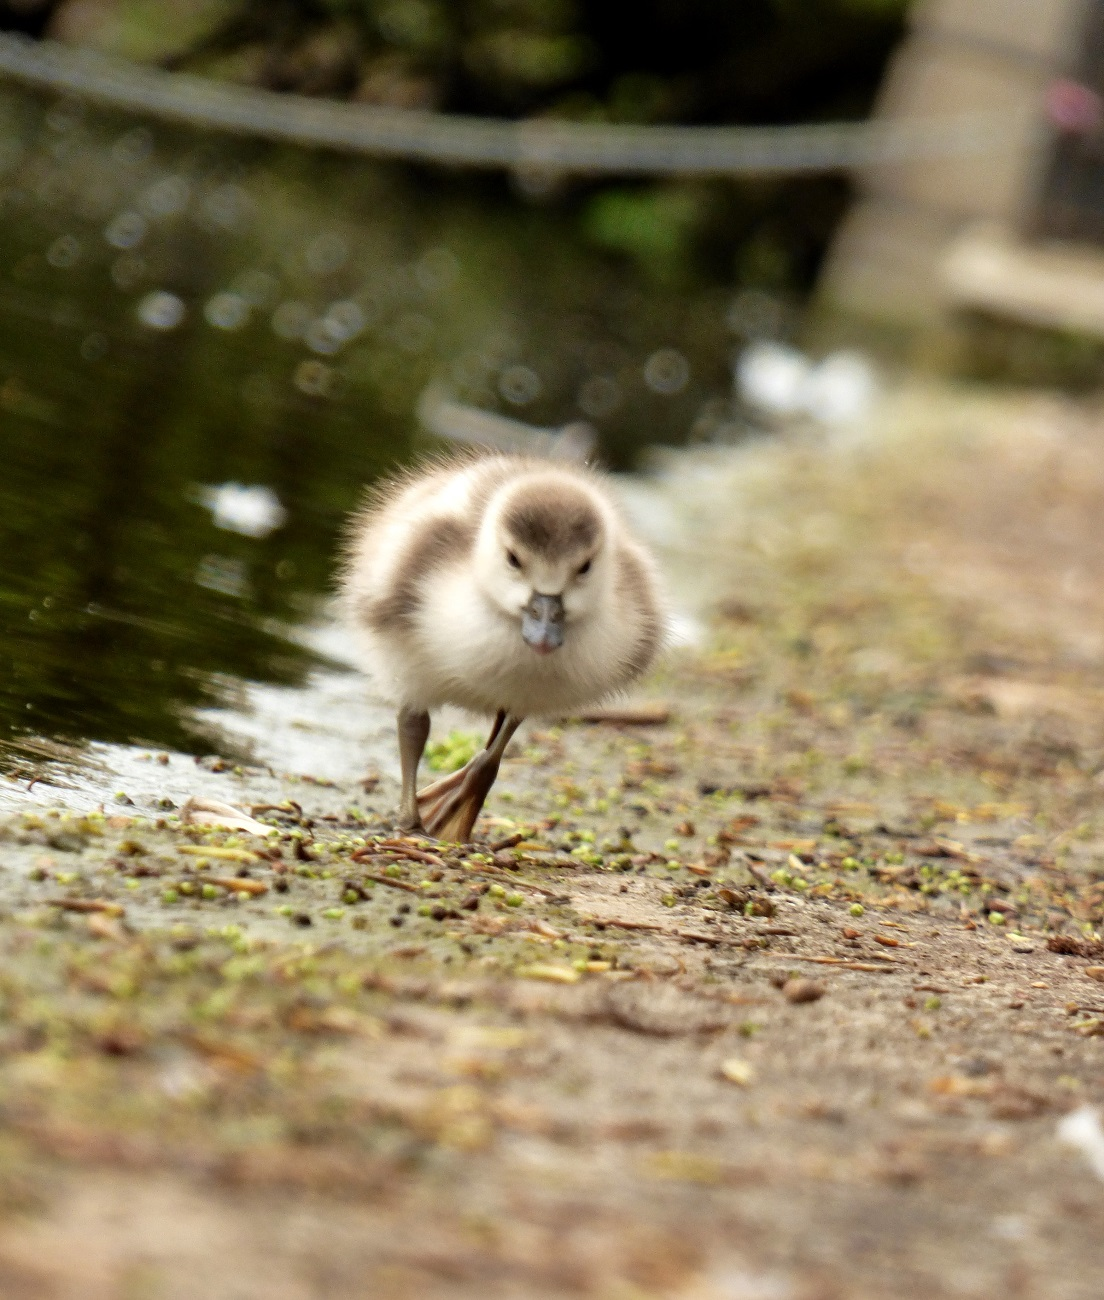 20170407_Westminster_Hyde-Park_Chick-on-the-run